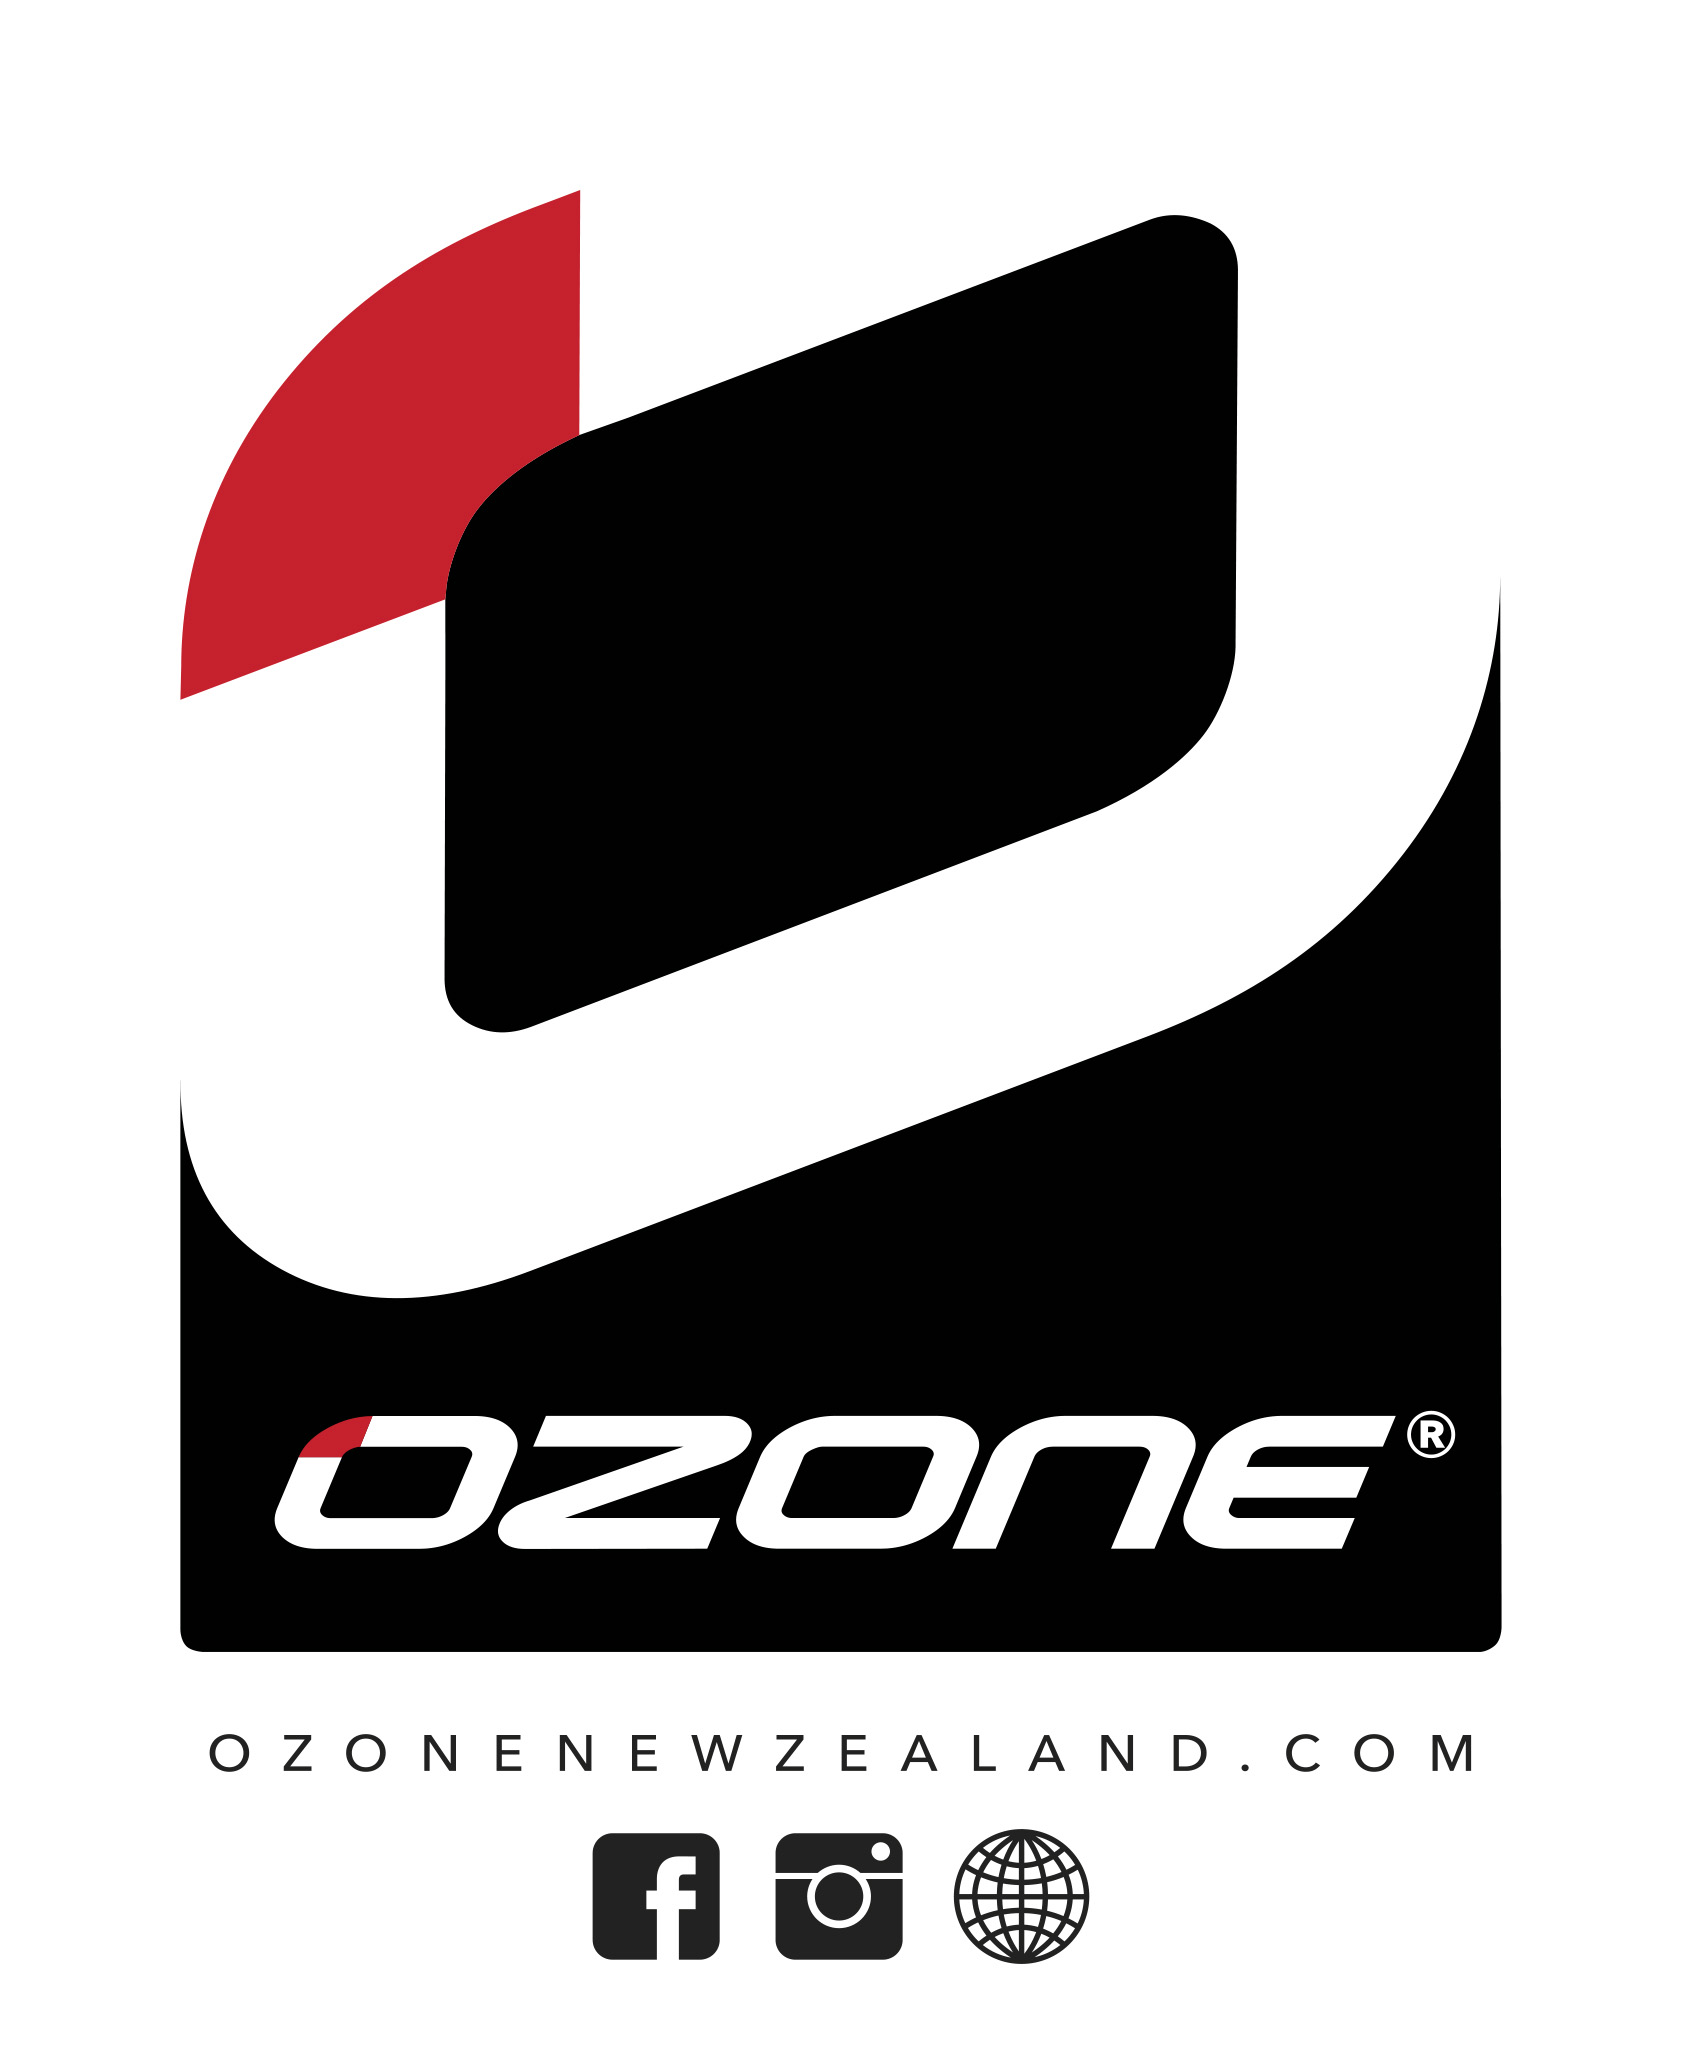 Ozone-NZ-badge-Ad-logo.jpg